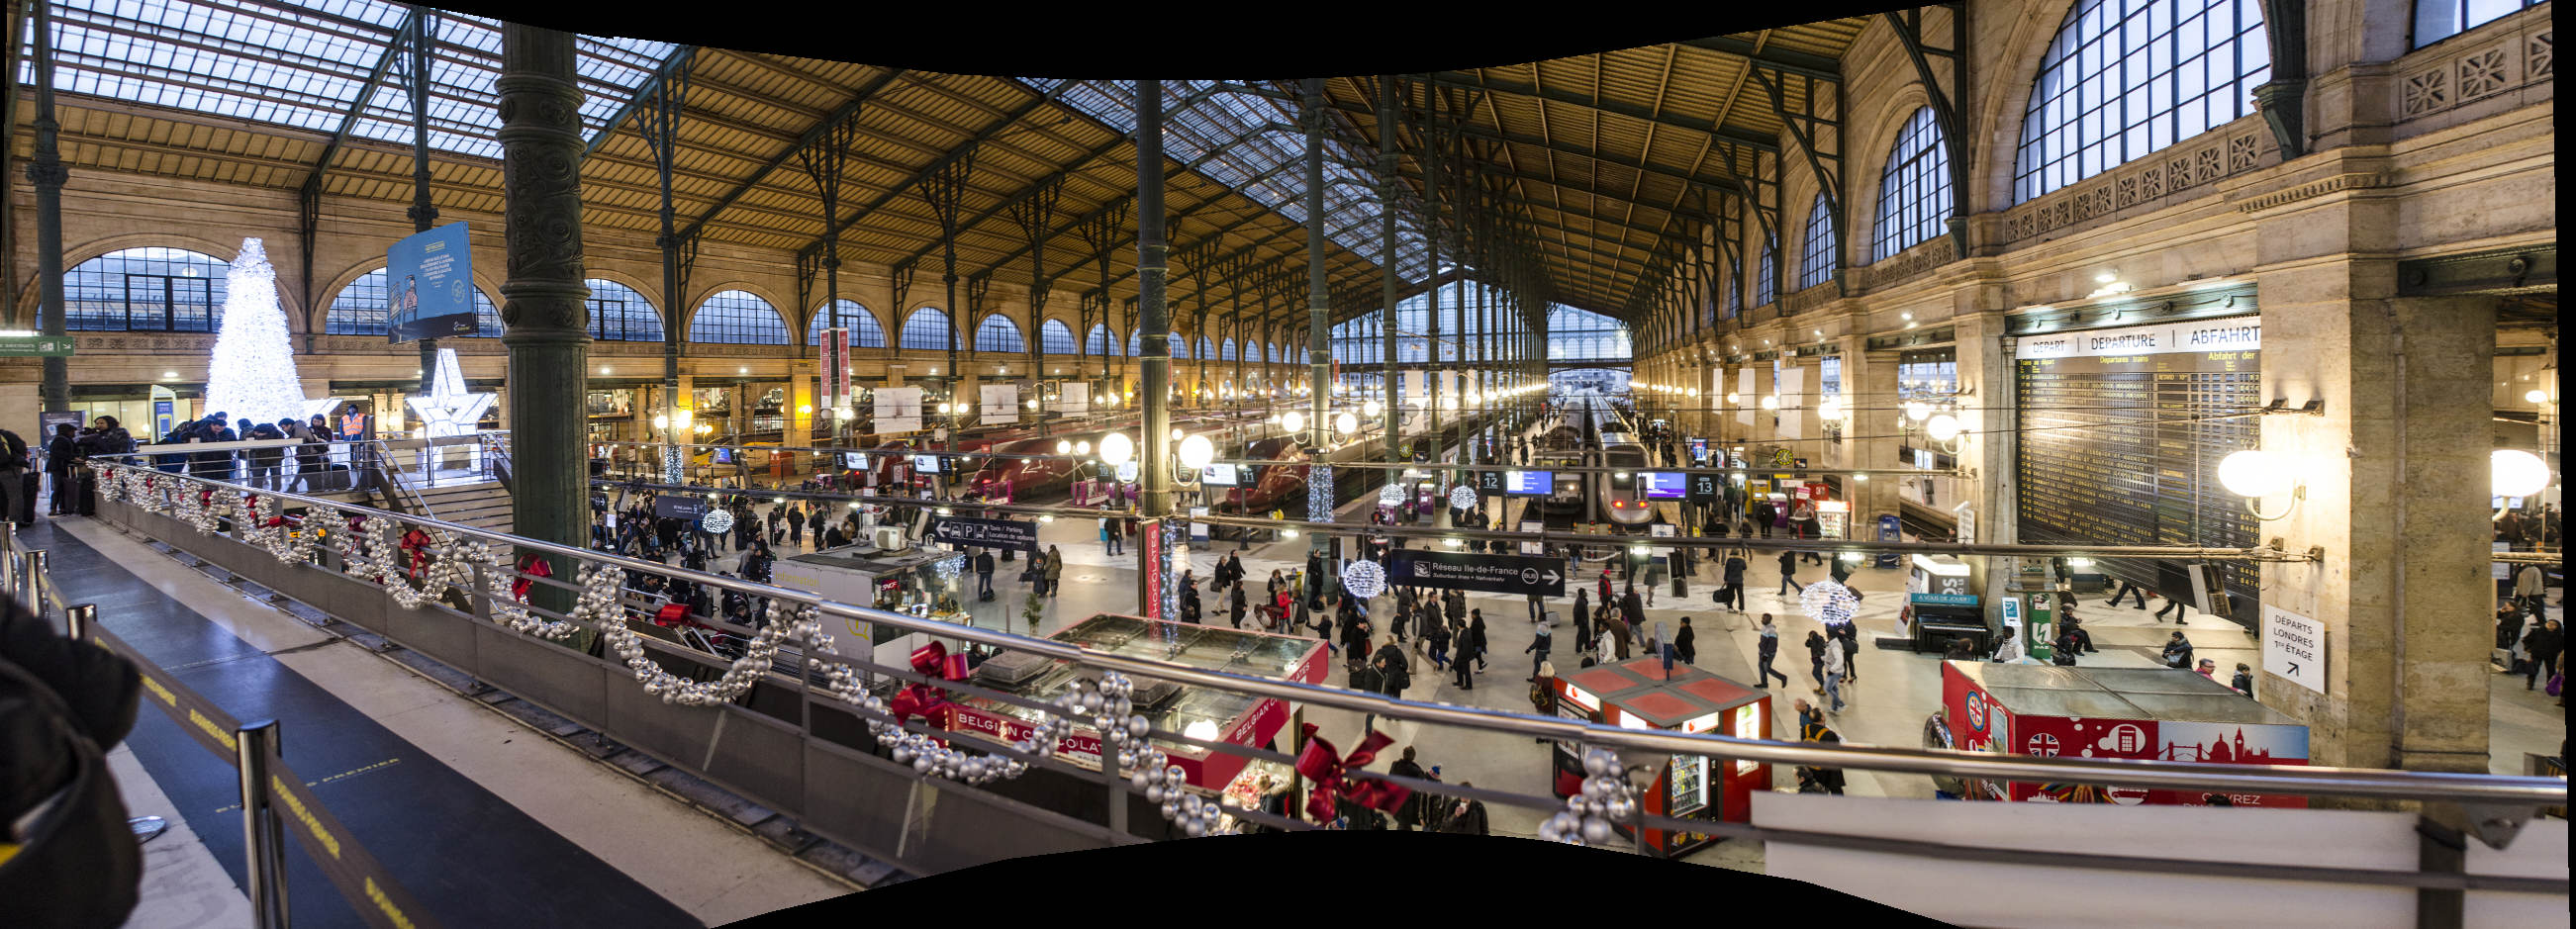 Gare Du Nord Train Station Paris By Train